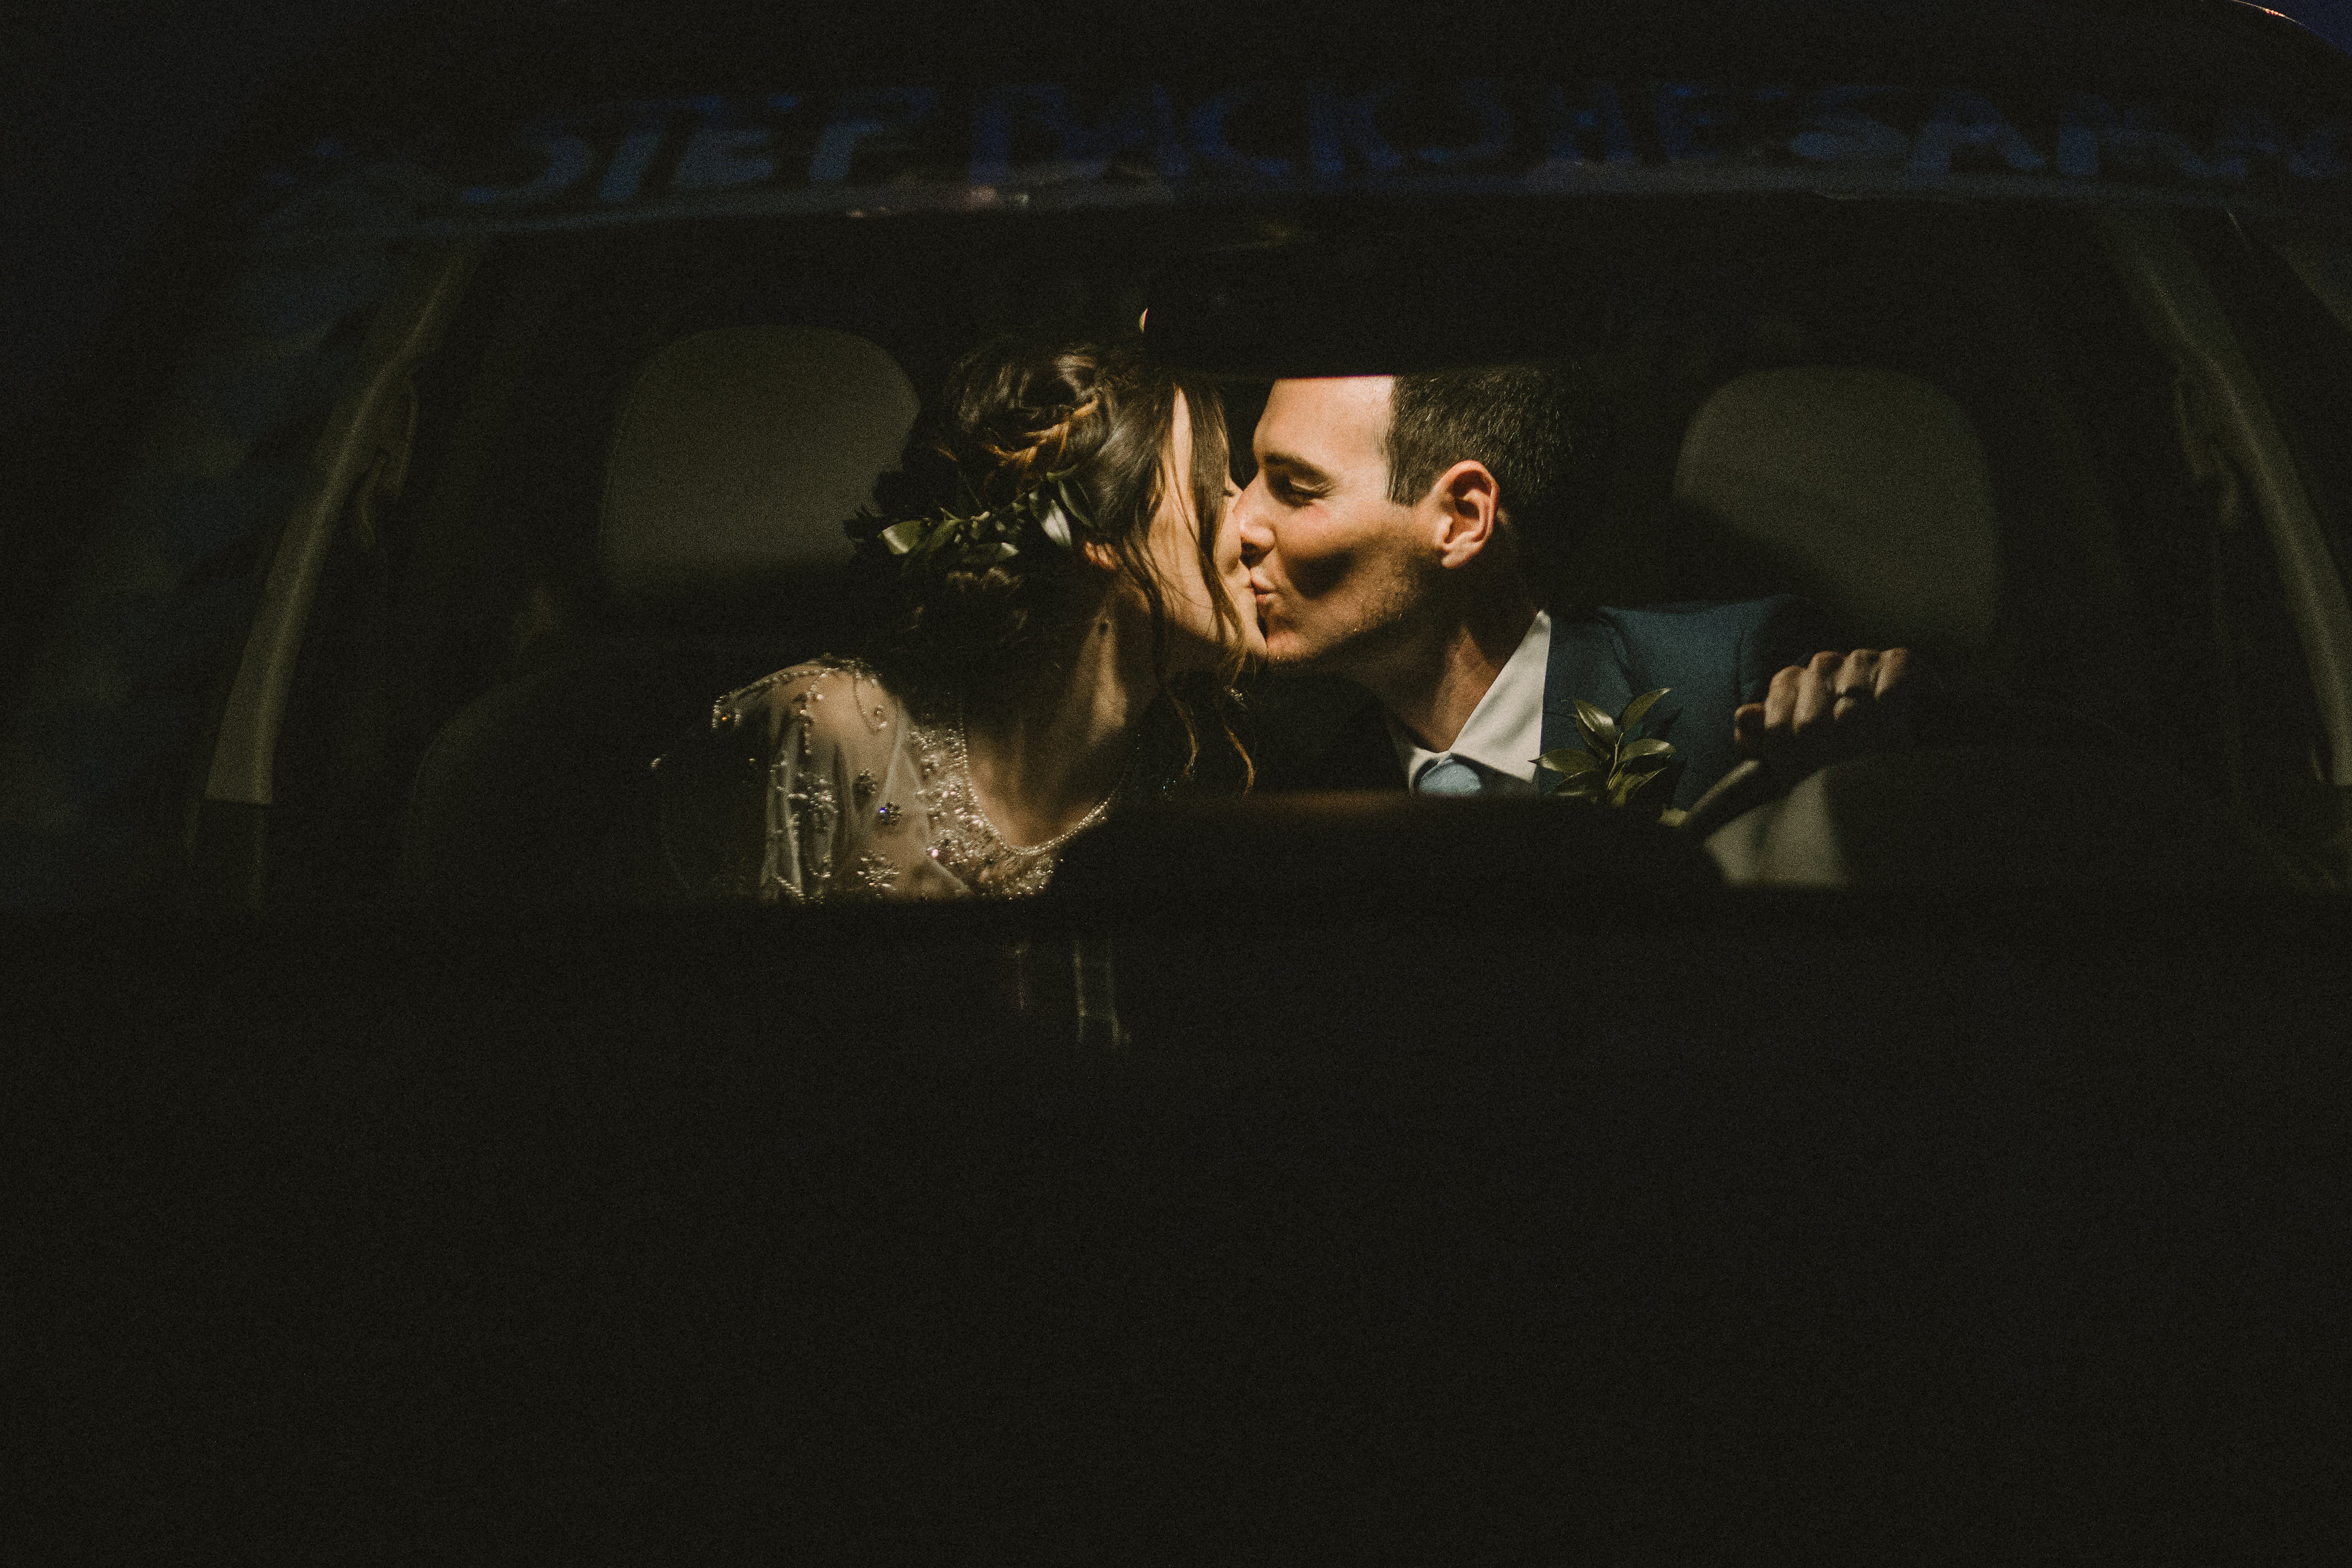 Bride and groom get in car and kiss as they leave their wedding as husband and wife